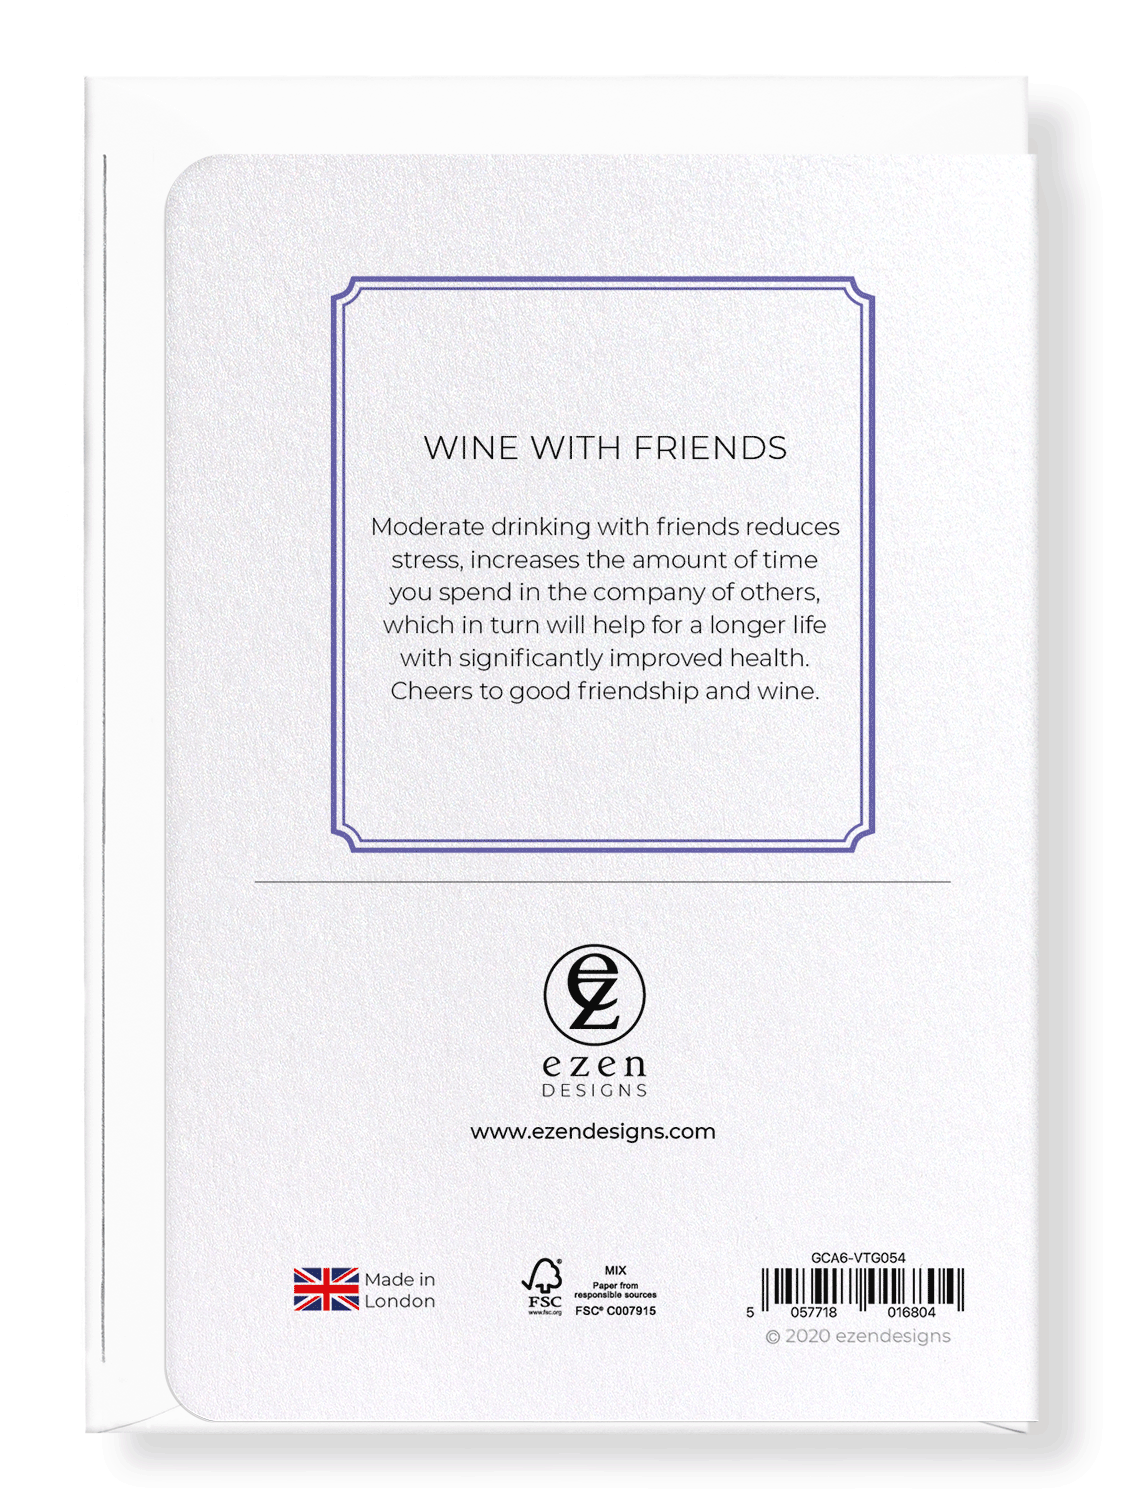 Ezen Designs - Wine with friends - Greeting Card - Back